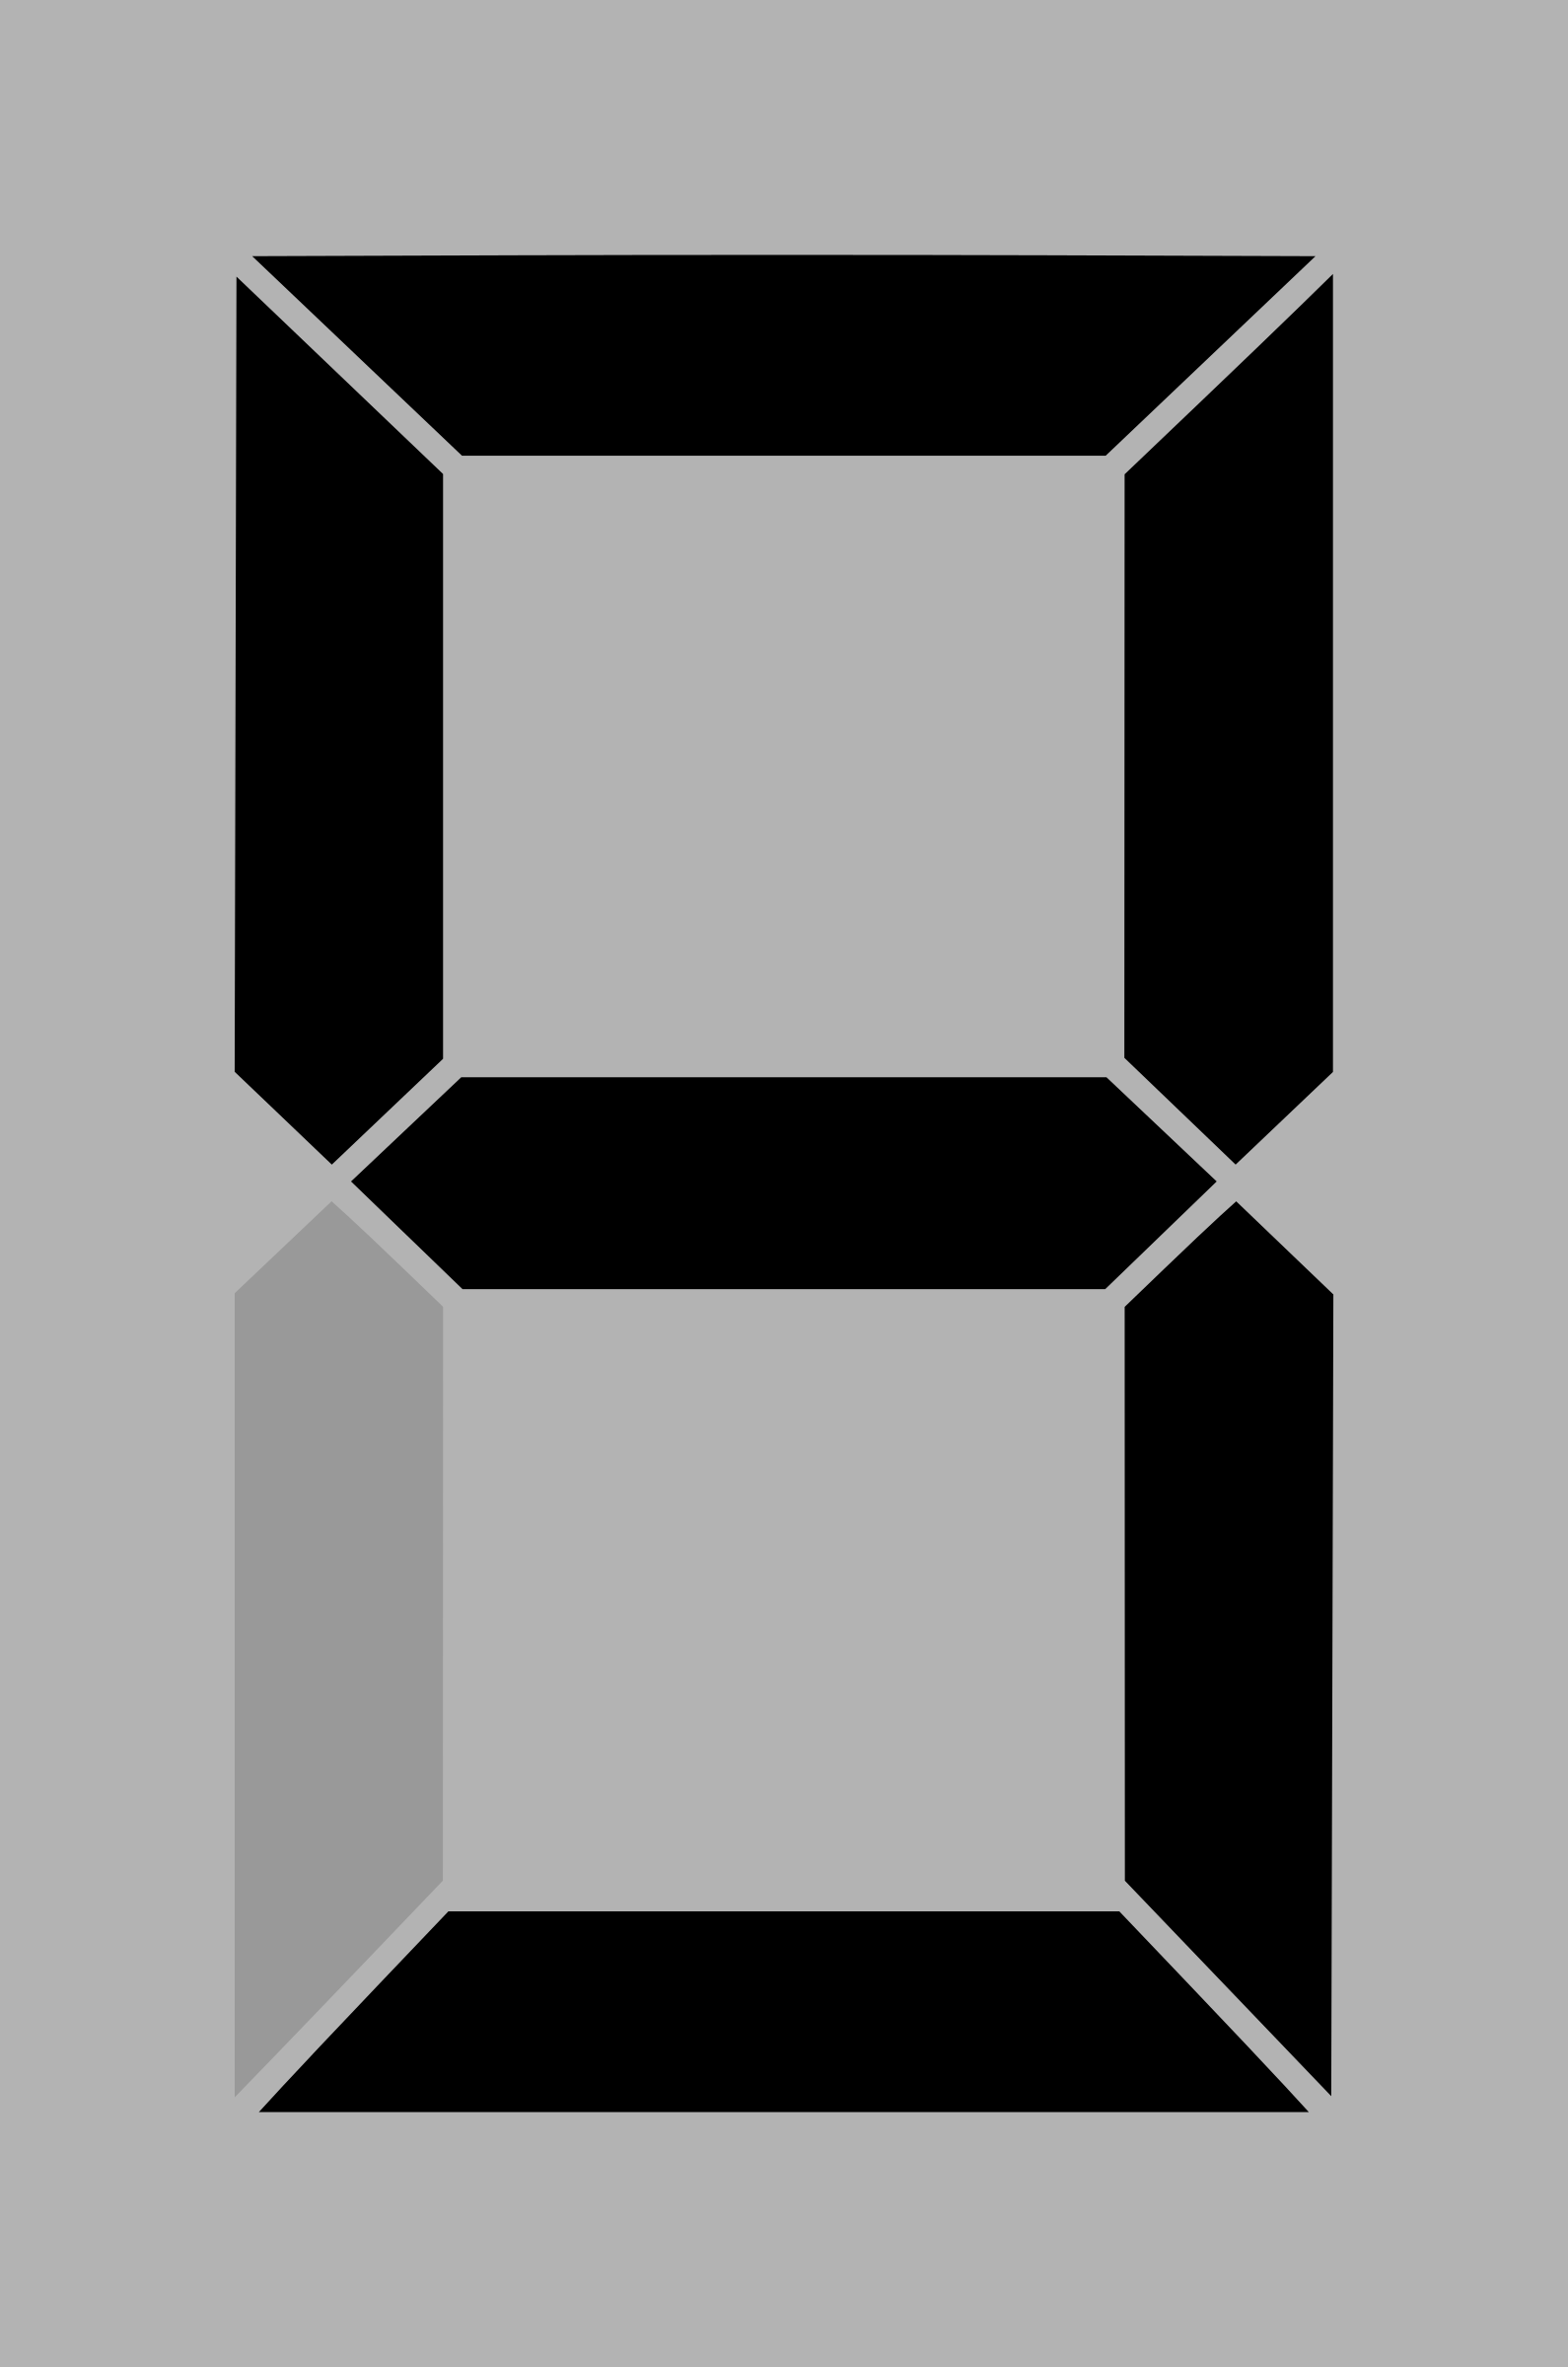 Seven segment display gray 9 by alex8664